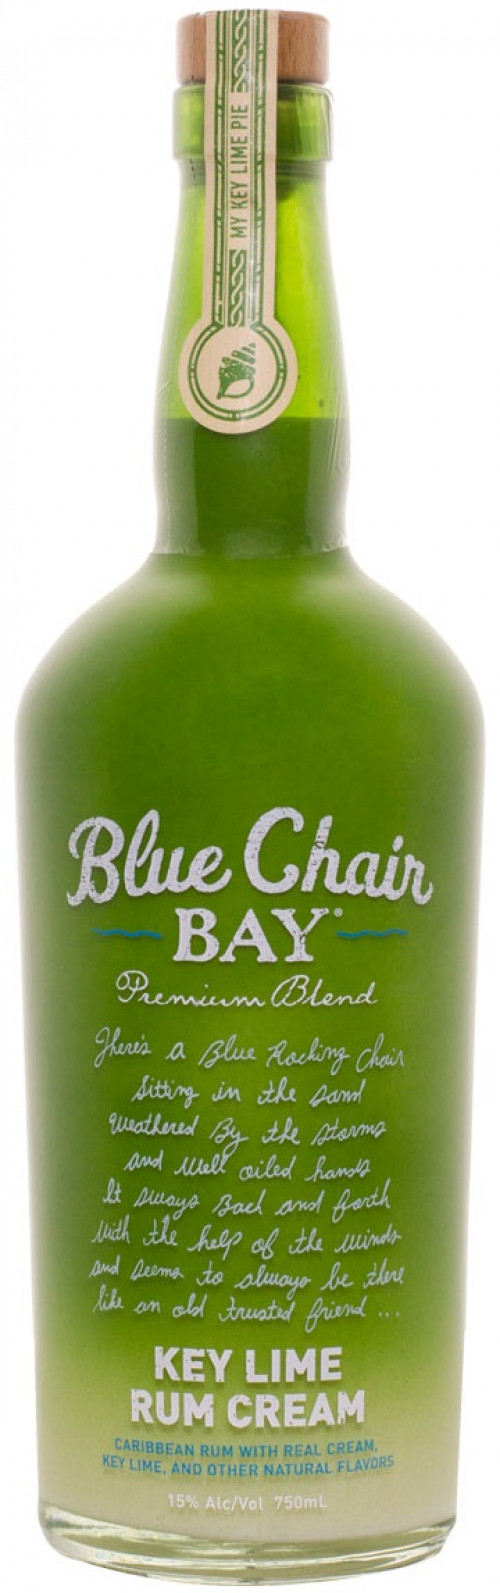 Blue Chair Bay Key Lime Cream 750ml